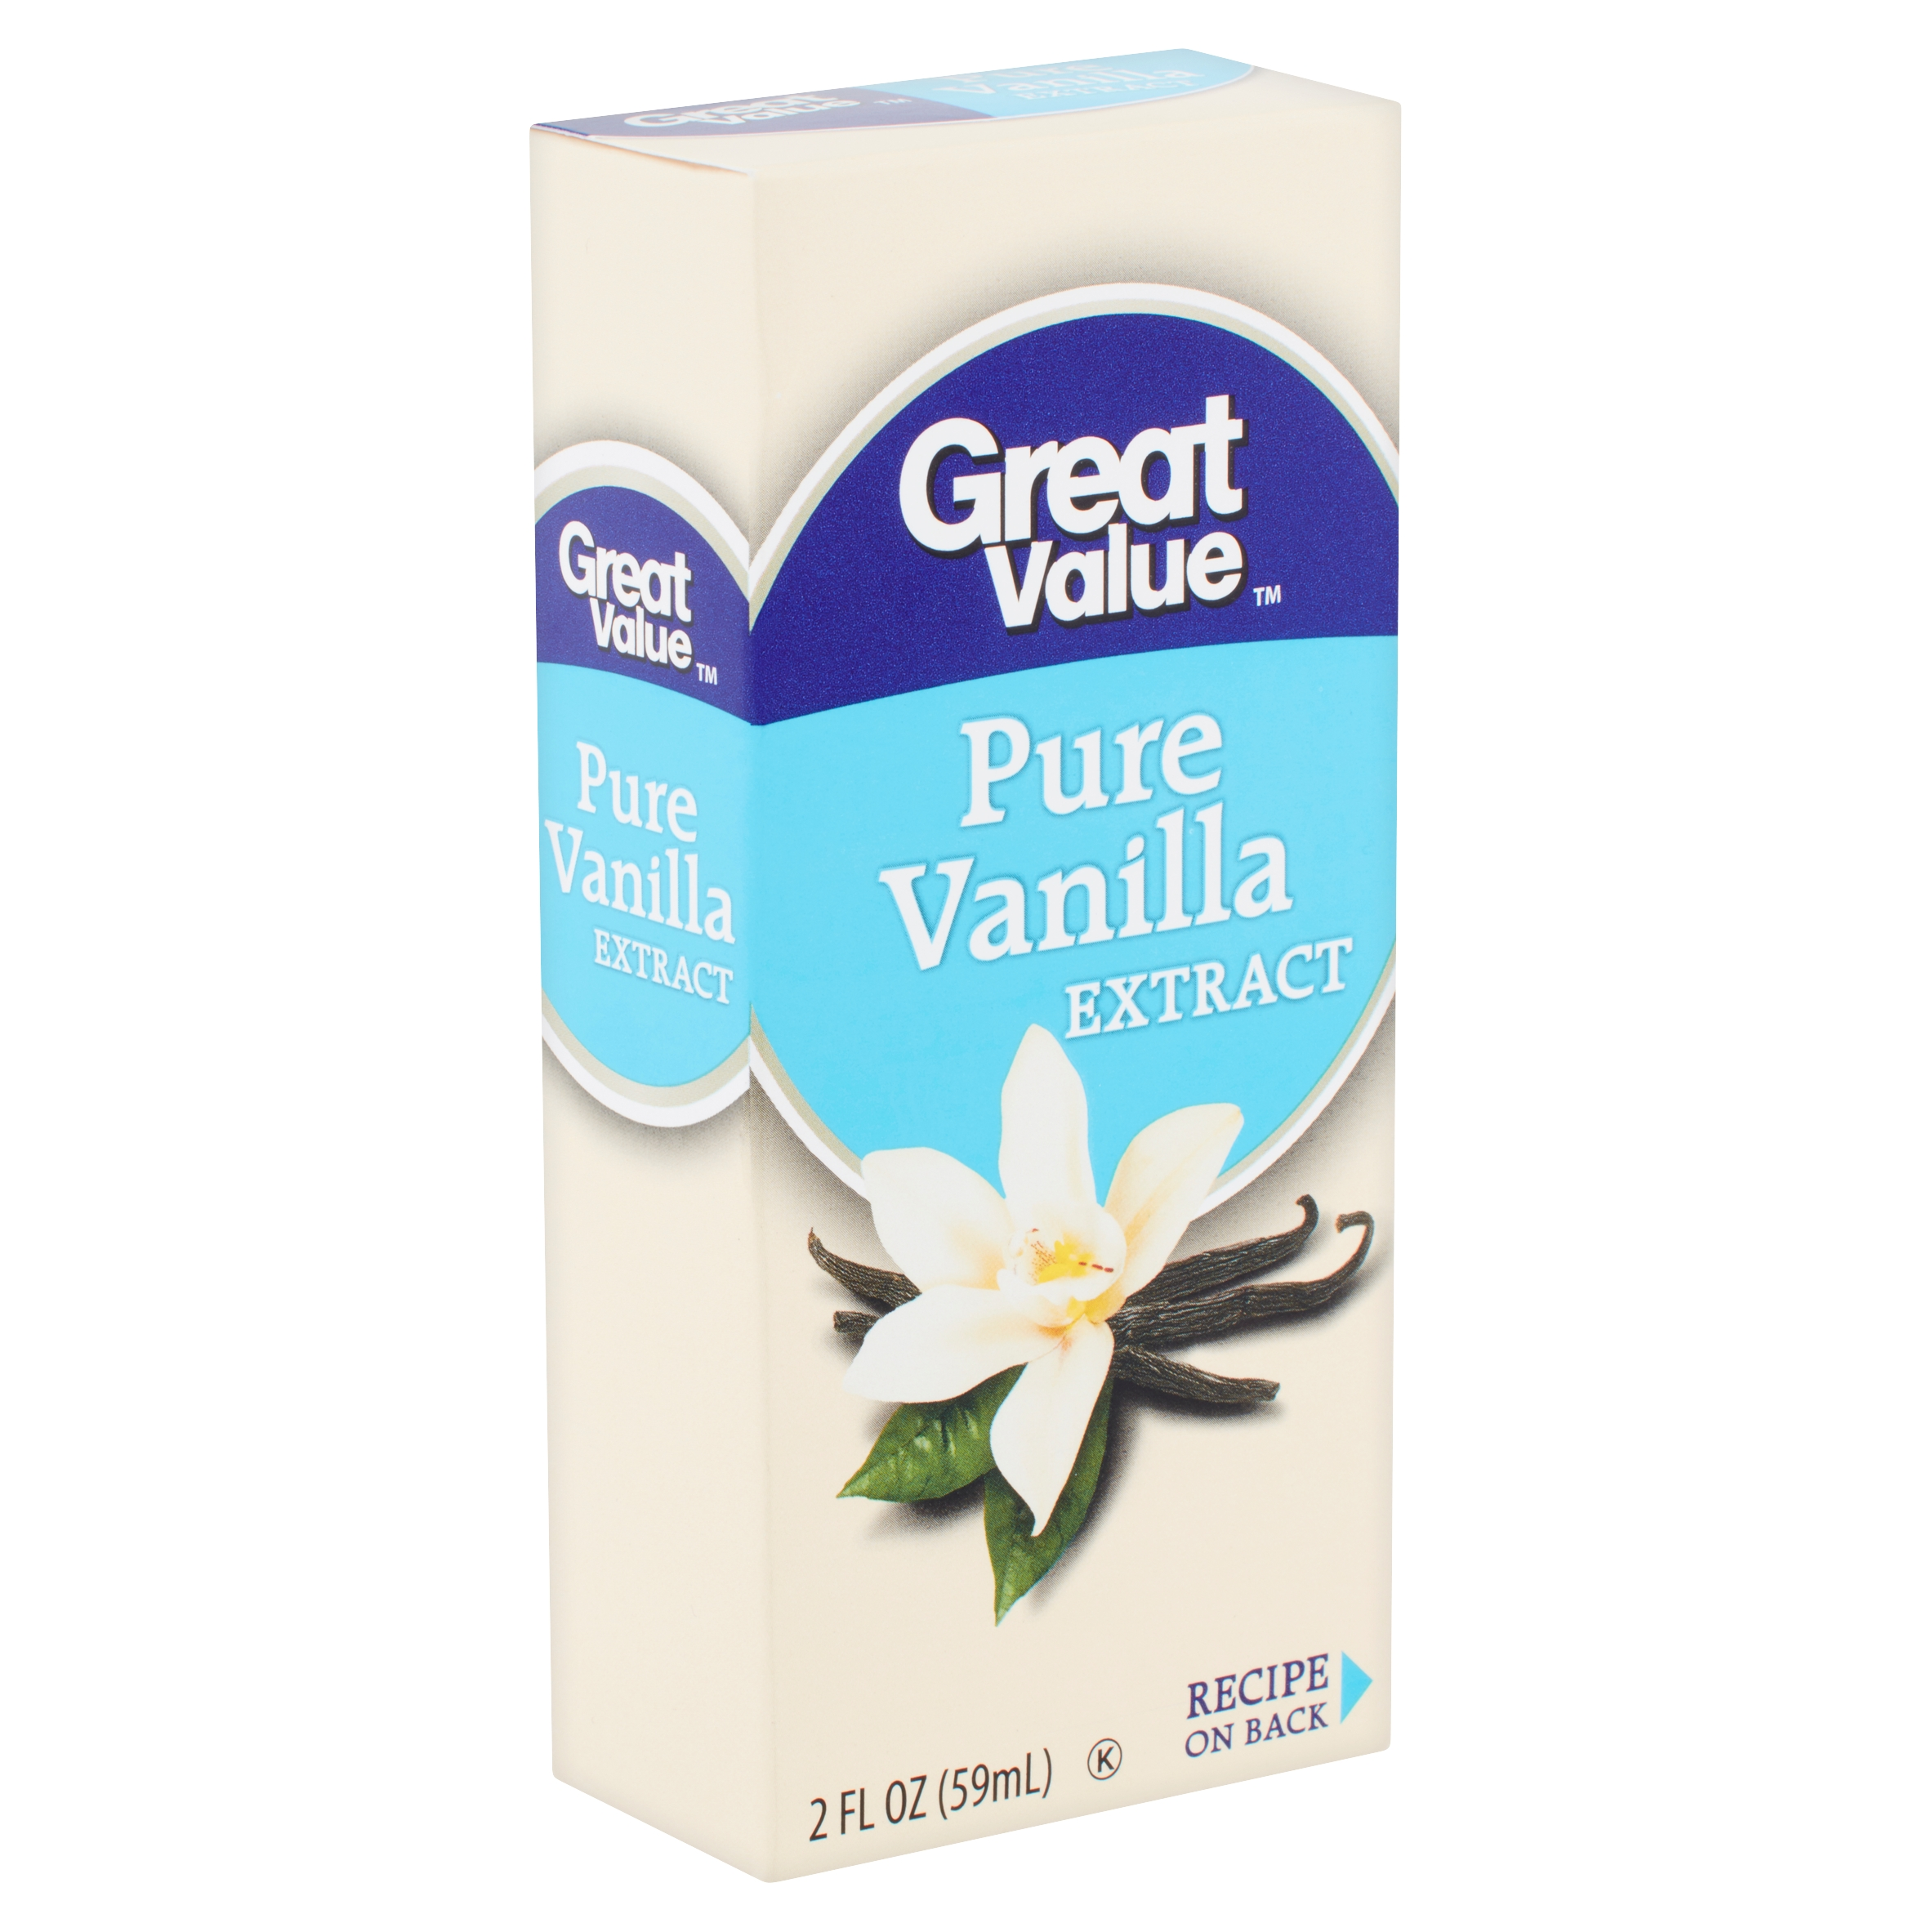 Great Value Pure Vanilla Extract, 2 fl oz